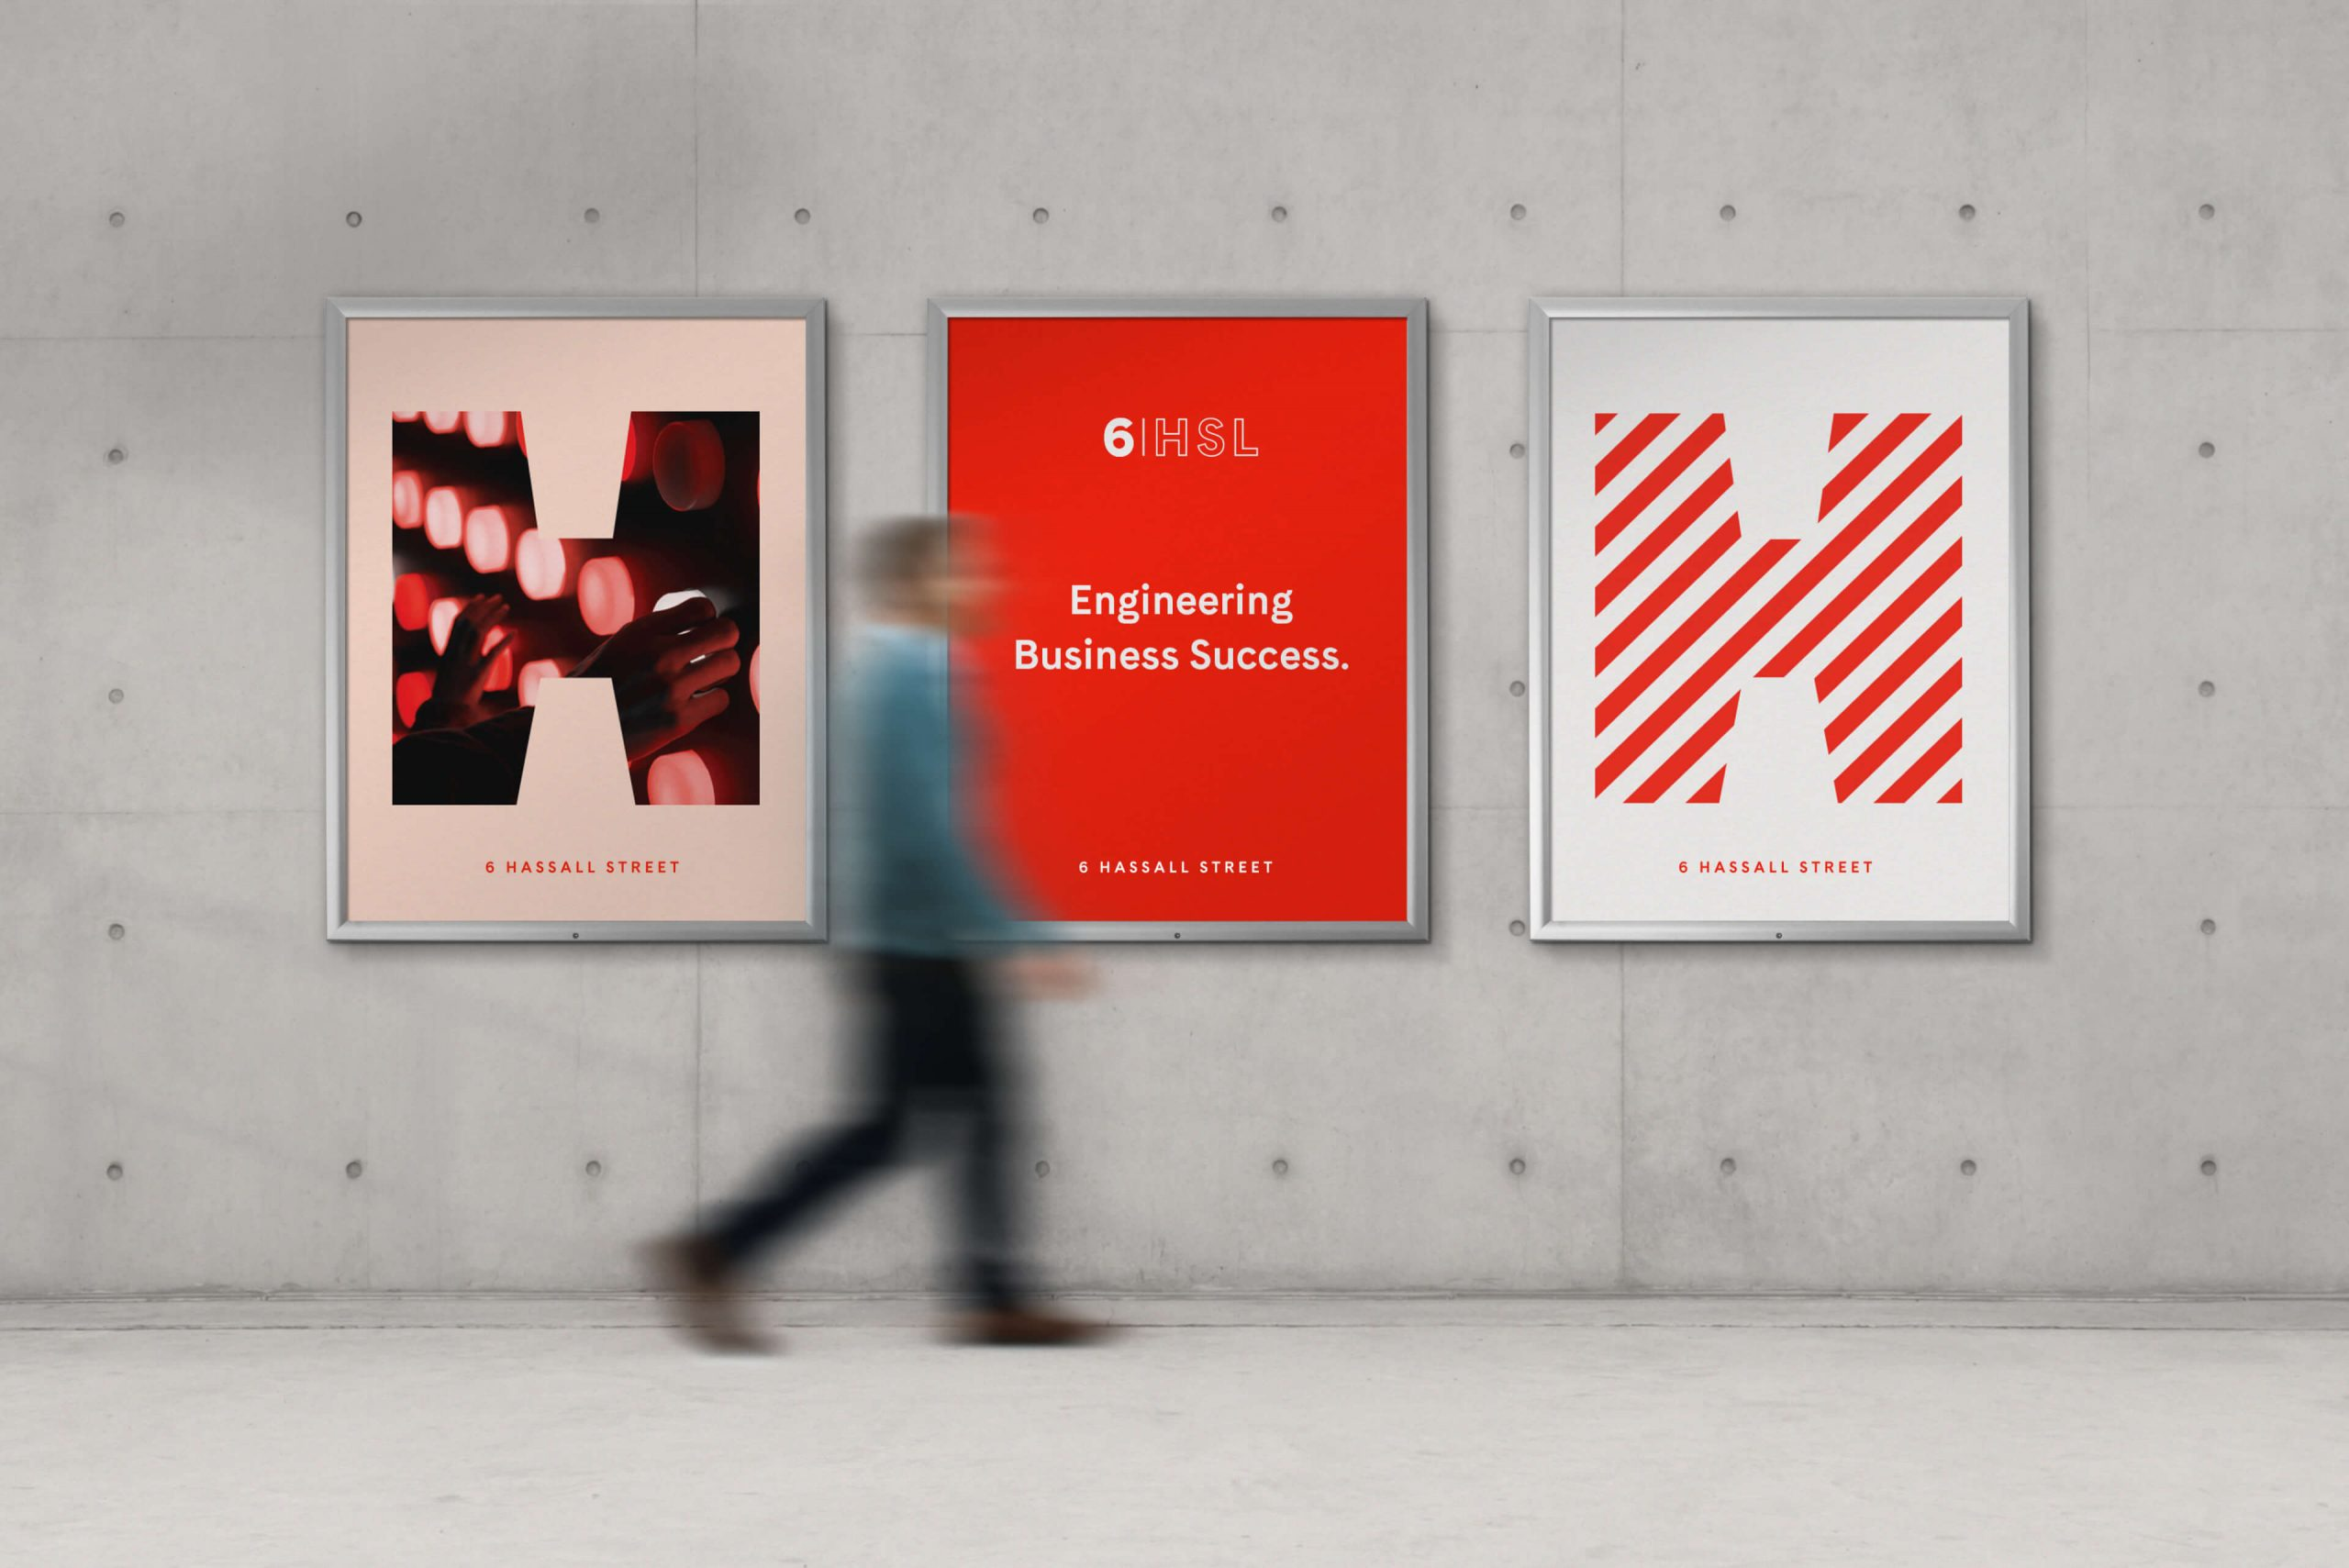 6 Hassall St Property Brand for Charter Hall - Comms Posters